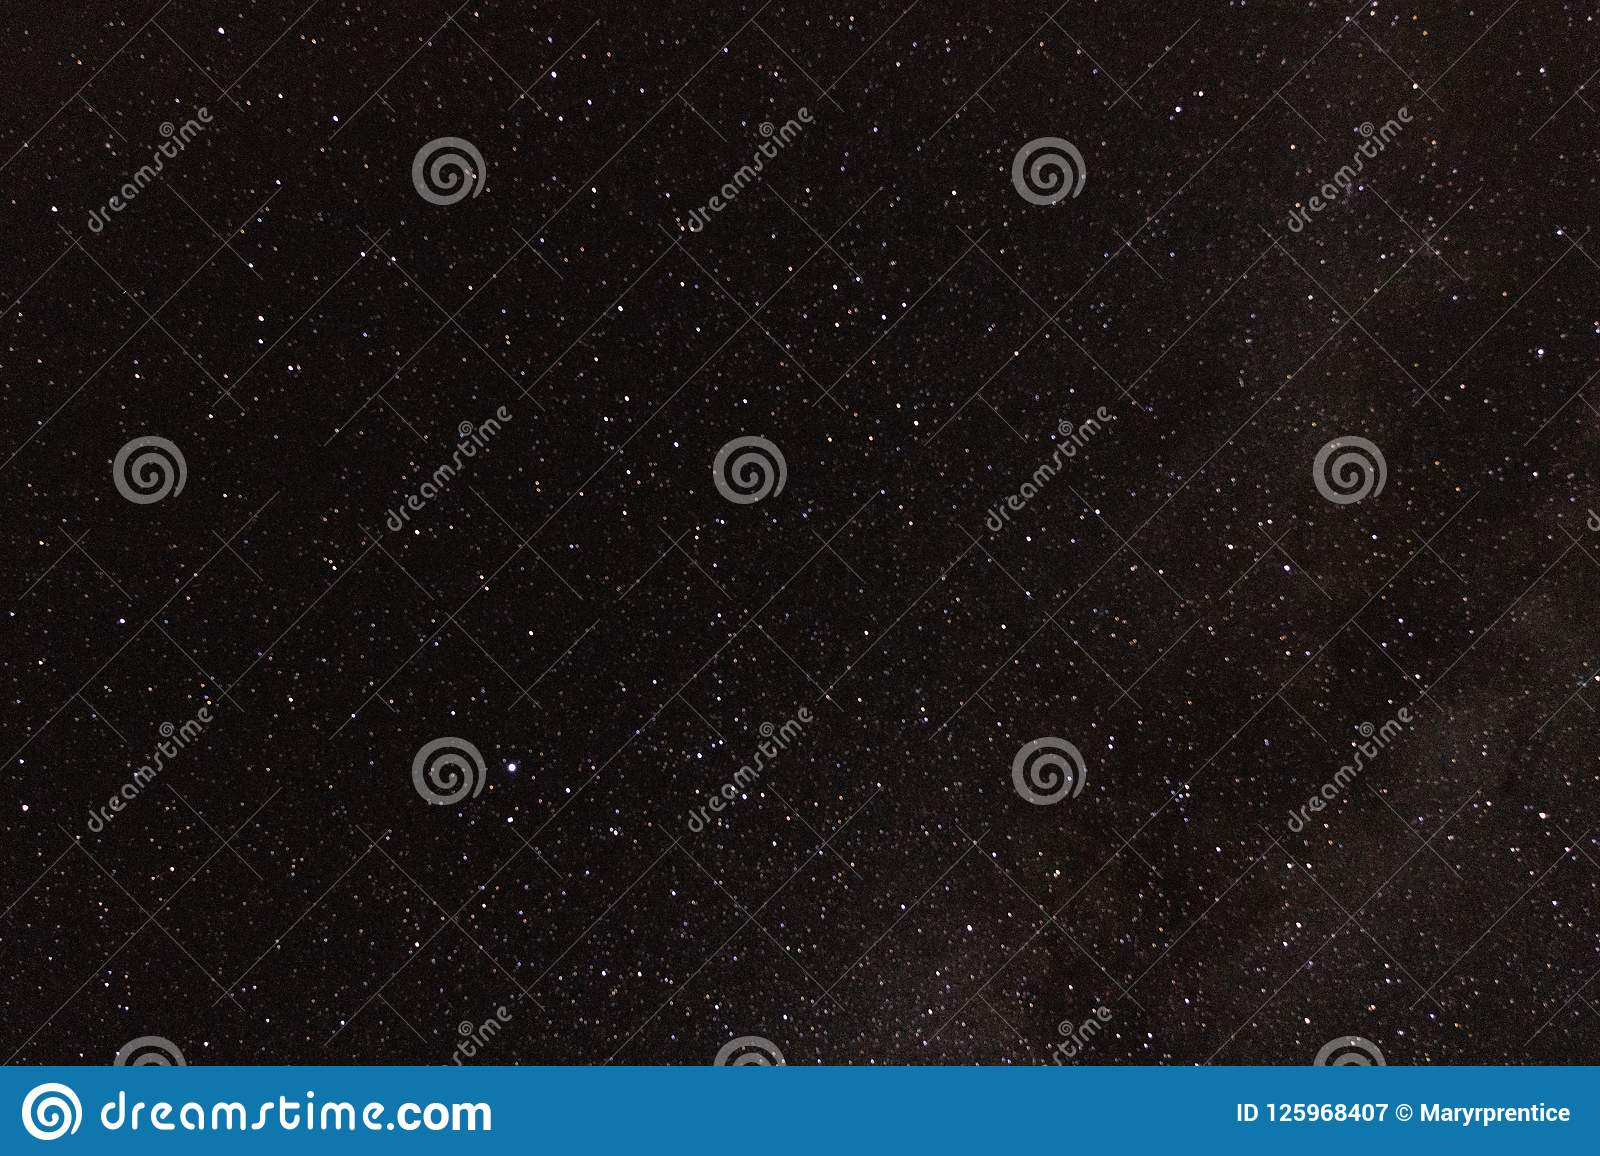 Astrophotography galaxy star background for astronomy, space or cosmos, a night sky universe, interstellar science fiction